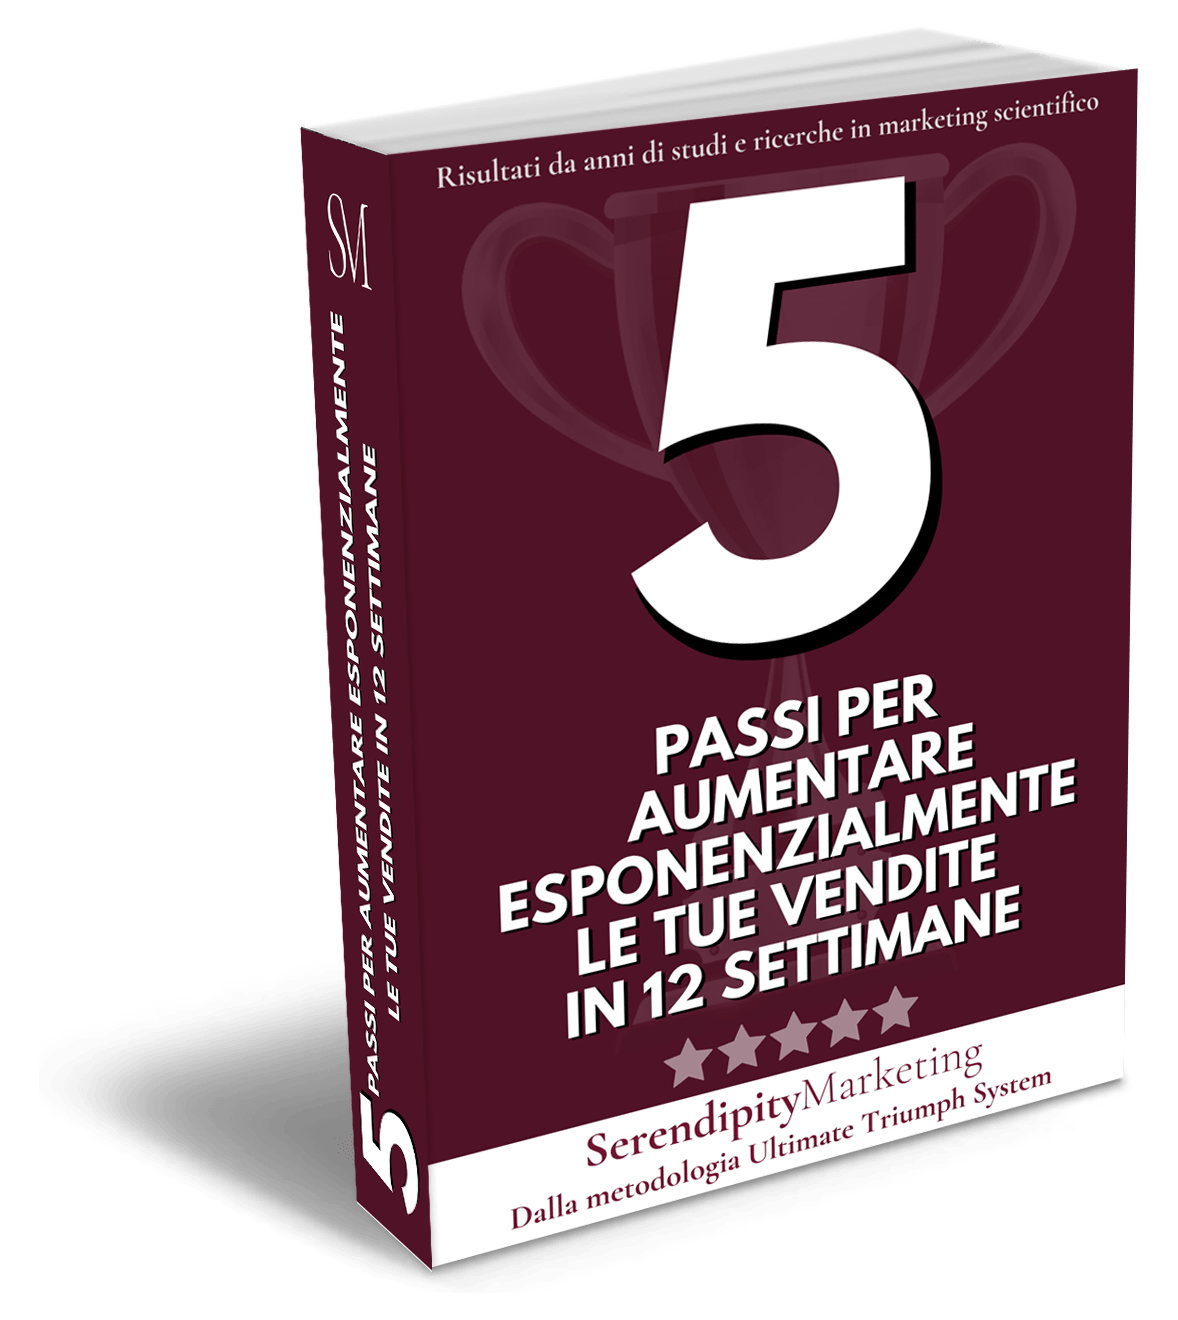 5-passi-per-aumentare-esponenzialmente-le-tue-vendite-in-12-settimane-Servizi-di-Marketing-Servizi-di-Marketing-e-Comunicazione-Servizi-di-Marketing-per-Aziende-Servizi-di-Web-Marketing-Agenzia-di-Marketing-Digitale-Agenzie-di-Marketing-Digitale-Agenzia-di-Digital-Marketing-Agenzie-di-Digital-Marketing-Servizi-di-Marketing-Digitale-Servizi-di-Digital-Marketing-Servizio-di-Marketing-Prezzi-Servizi-di-Marketing-Italia-Servizi-di-Marketing-Roma-Servizi-di-Marketing-Milano-Servizi-di-Digital-Marketing-Roma-Servizi-di-Digital-Marketing-Milano-Marketing-per-Psicologi-Marketing-per-Ristoranti-Marketing-per-Parrucchieri-Maketing-per-Hotel-Marketing-per-Dentisti-Marketing-per-Artisti-Marketing-per-il-turismo-Marketing-per-Fotografi-Marketing-Digitale-per-Ristoranti-Marketing-Digitale-per-Hotel-Digital-Marketing-per-lo-sport-Digital-Marketing-per-Ristoranti-Digital-Marketing-per-Architetti-Digital-Marketing-per-Principianti-Digital-Marketing-per-il-Turismo-Digital-Marketing-per-la-Ristorazione-Strategie-di-Marketing-per-Servizi-Marketing-per-Società-di-Servizi-Servizi-di-Digital-Marketing-per-Italia-Servizi-di-Digital-Marketing-per-Italiani-Agenzia-di-Branding-Agenzia-di-Personal-Branding-Agenzia-di-Comunicazione-Branding-Branding-per-Aziende-Personal-Branding-per-l'Azienda-Personal-Branding-per-il-Manager-Personal-Branding-per-Imprenditori-Logo-Personalizzato-Logo-per-B&B-Logo-per-YouTube-Logo-per-Centro-Estetico-Logo-per-Instagram-Logo-per-Team-Logo-per-Canale-YouTube-Sito-Internet-Costo-Sito-Internet-Fai-da-Te-Agenzia-Web-Marketing-Agenzia-Web-Milano-Agenzia-Web-Roma-Agenzia-Web-Marketing-Milano-Agenzia-Web-Marketing-Padova-Agenzia-Web-Marketing-Torino-Agenzia-Web-Design-Agenzia-Web-Verona-Manutenzione-Sito-Web-Manutenzione-Sito-Web-Costo-Manutenzione-Ordinaria-Sito-Web-Costi-Manutenzione-Sito-Web-Manutenzione-di-un-Sito-Web-Preventivo-Manutenzione-Sito-Web-Costo-Manutenzione-Sito-Internet-Creazione-di-Sito-Internet-Creazione-di-un-Sito-Internet-Creazione-Sito-Internet-Creazione-Sito-Internet-Costo-Creazione-Sito-Internet-Professionale-Creazione-Sito-Internet-Contabilizzazione-Costi-Creazione-Sito-Internet-Consulenza-Marketing-Consulenza-Marketing-e-Comunicazione-Consulenza-Marketing-Costo-Consulenza-Marketing-Online-Consulenza-Marketing-Roma-Consulenza-Marketing-Digitale-Consulenza-Marketing-Milano-Consulenza-Marketing-per-Aziende-Consulenza-Marketing-Strategico-Consulenza-di-Digital-Marketing-Consulenza-di-Marketing-Consulenza-di-Marketing-Strategico-Quanto-Costa-una-Consulenza-di-Marketing-Società-di-Consulenza-di-Marketing-Aziende-di-Consulenza-di-Marketing-Società-di-Consulenza-di-Marketing-Milano-Consulente-di-Marketing-Digitale-Marketing-Reti-Sociali-Reti-Sociali-Marketing-Reti-Social-Marketing-Reti-Social-Marketing-Italia-Social-Media-Agenzia-Social-Media-Agenzia-Comunicazione-Social-Media-Agenzia-Milano-Social-Media-Agenzia-Pubblicitaria-Agenzia-Social-Media-Italia-Social-Media-Manager-Agenzia-Social-Media-Marketing-Agenzia-Immobiliare-Agenzia-Social-Media-Marketing-Milano-Agenzia-Social-Media-Marketing-Roma-Agenzia-Social-Media-Marketing-Prezzi